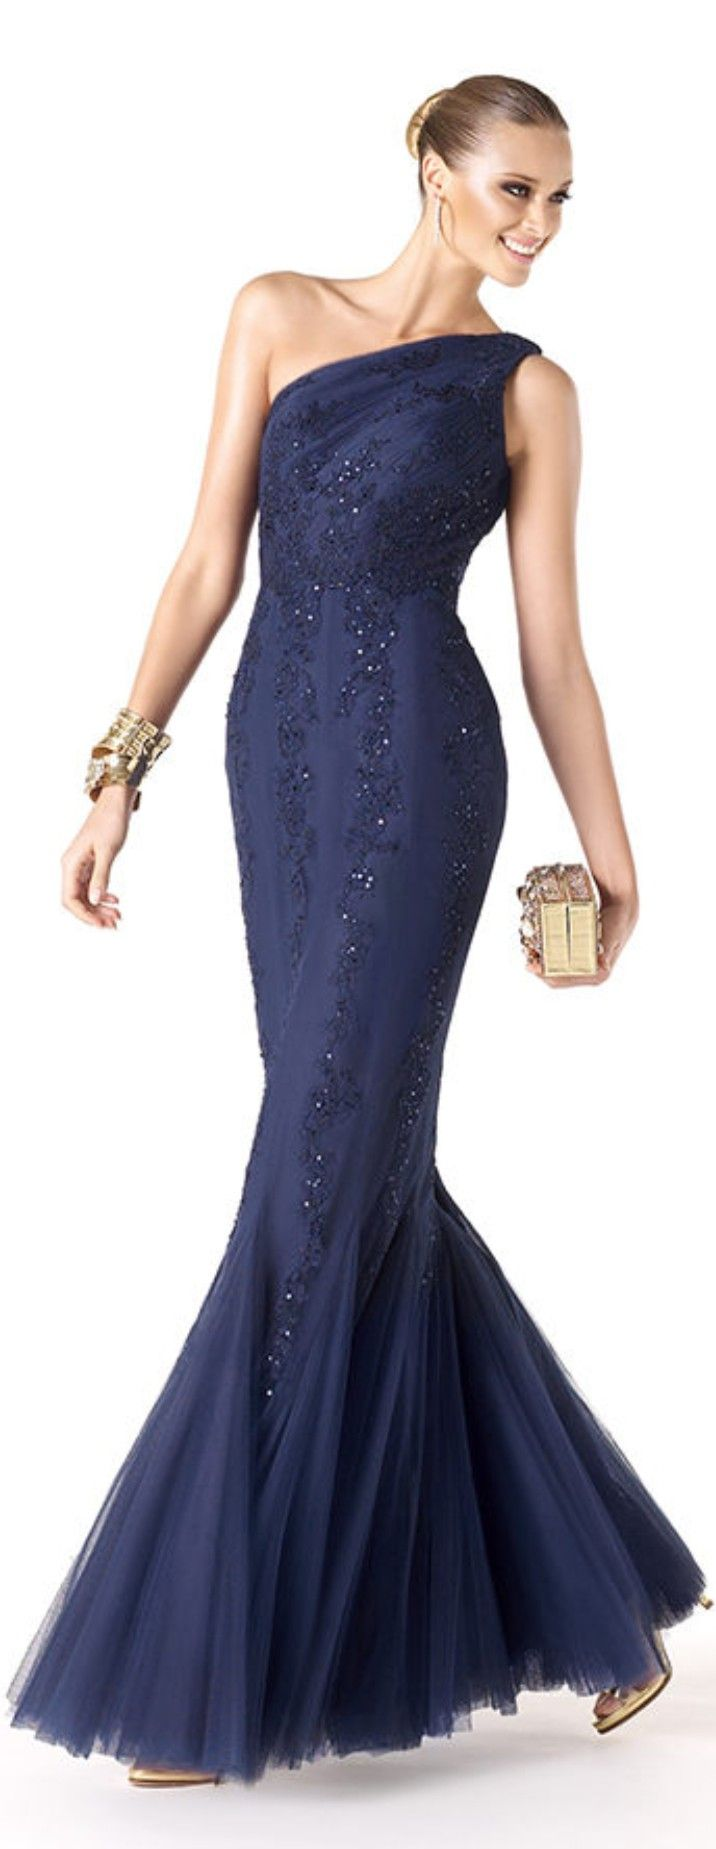 1000 images about sexy wedding guest dresses on pinterest for Sexy wedding guest dress